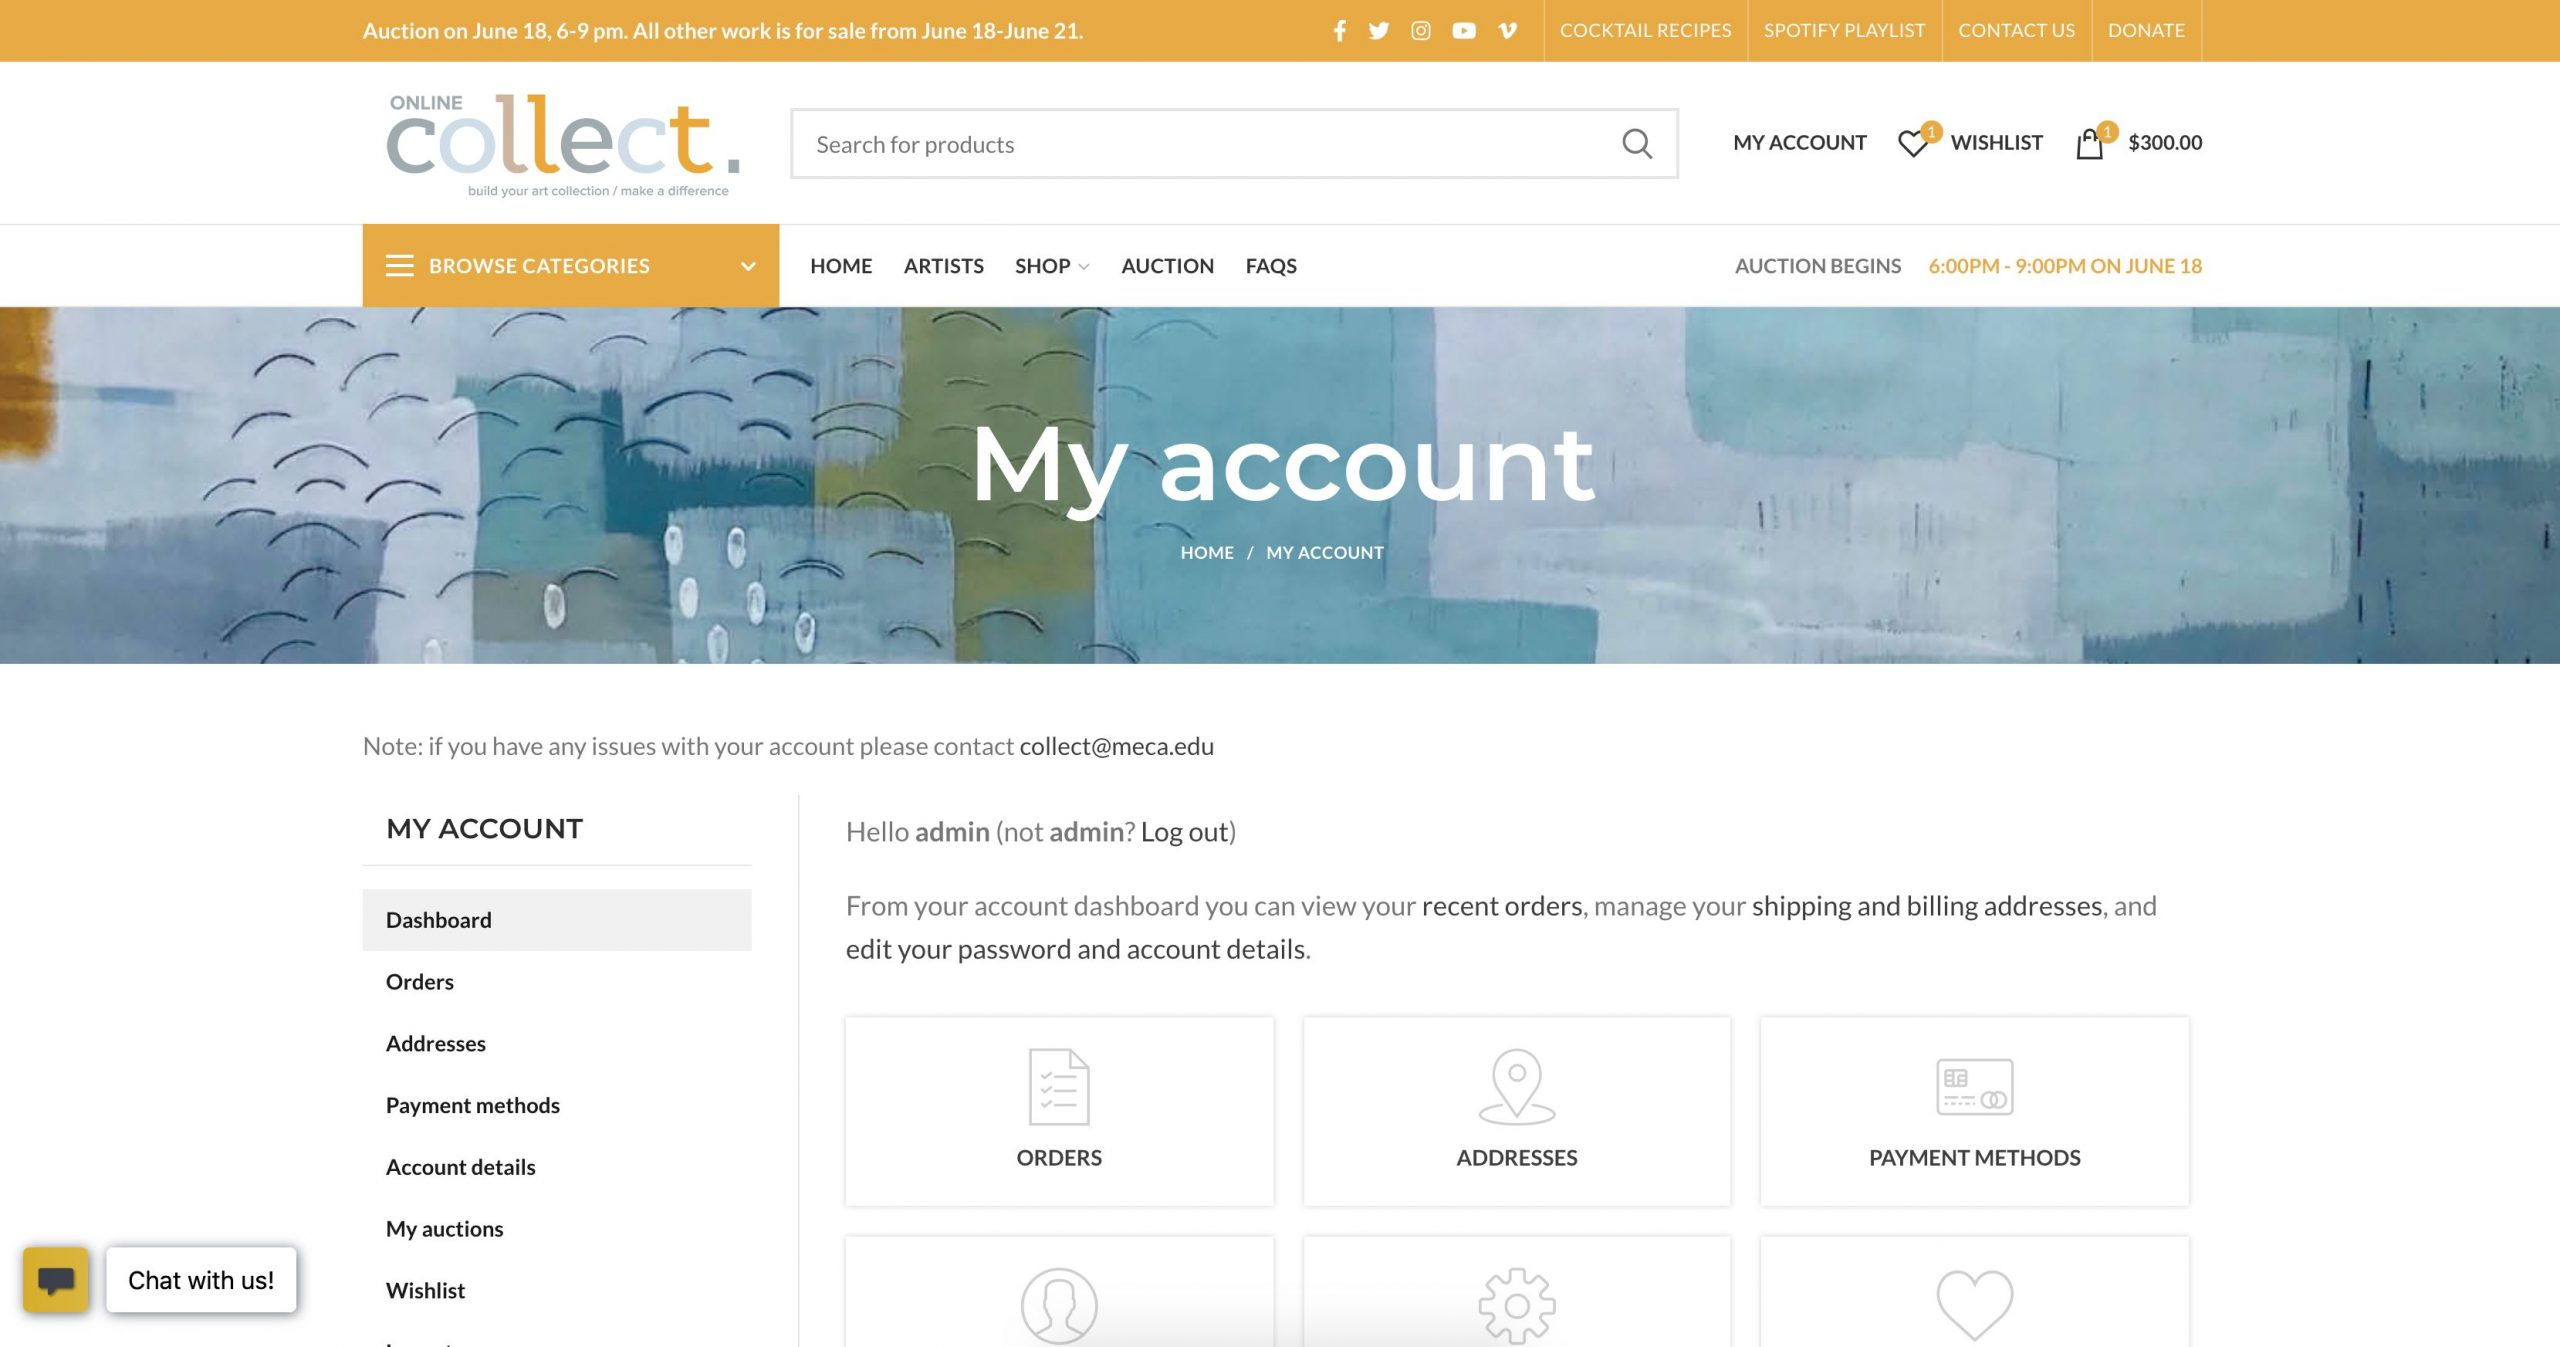 Meca online collect my account page